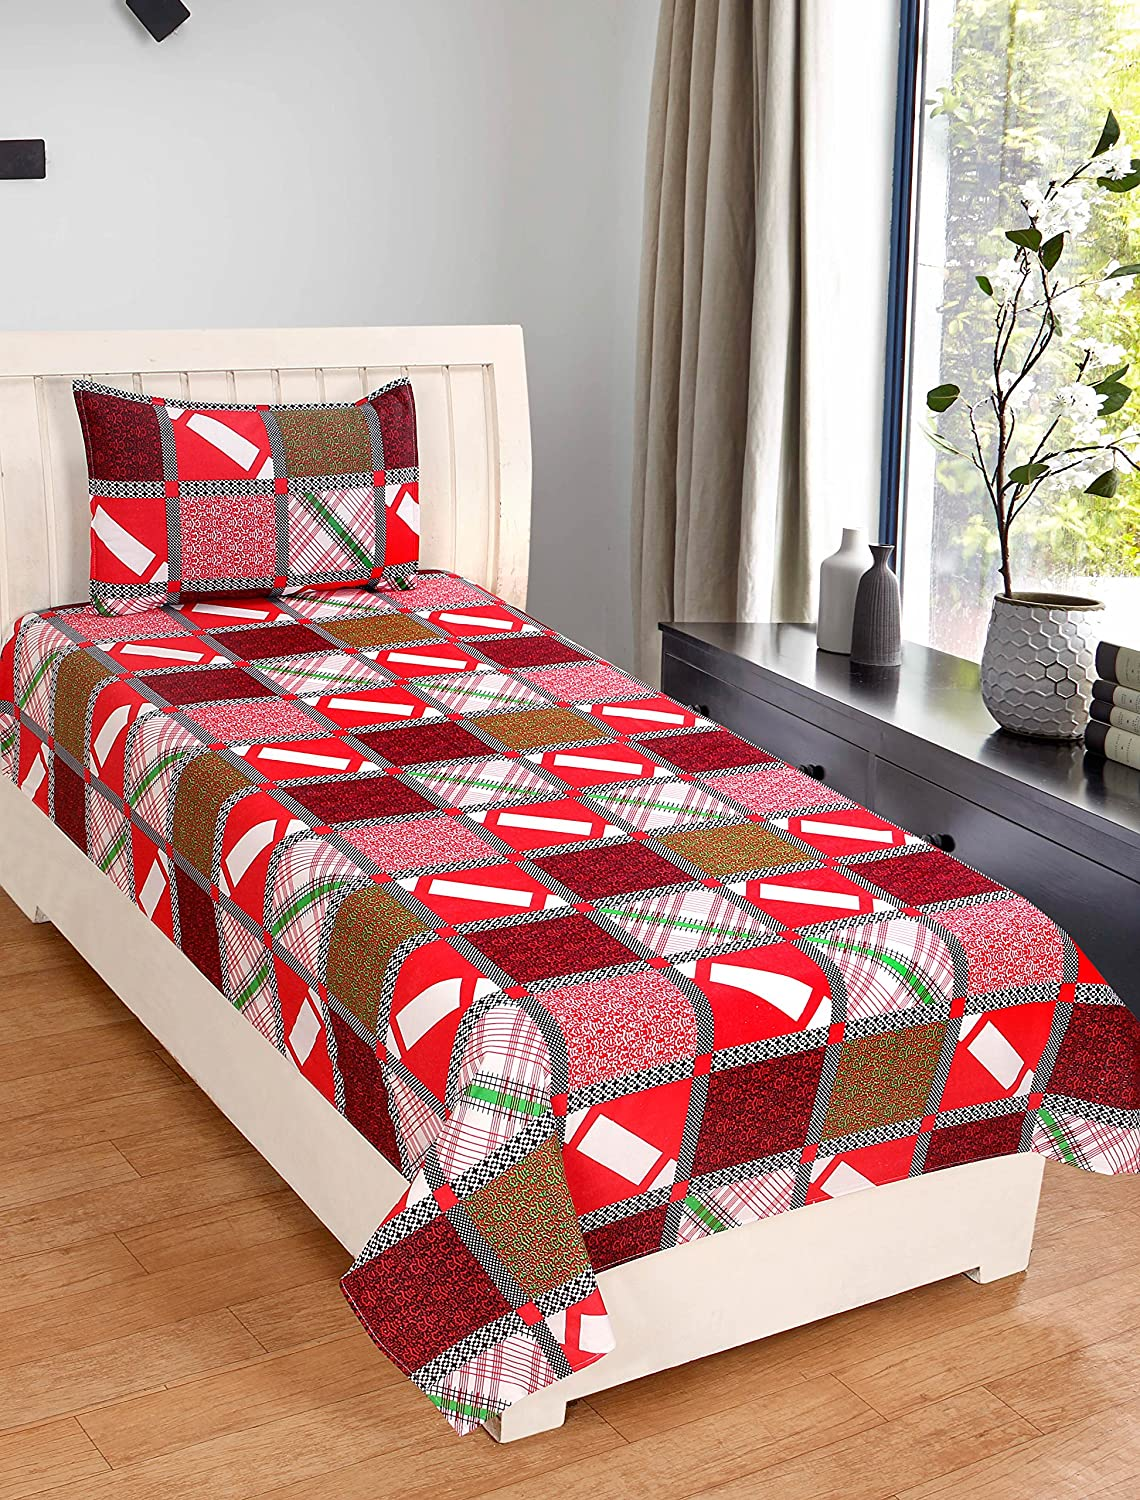 7c522d1f8b Zain Cotton Single Bed Sheet with 1 Pillow Cover, RED Checkered Pattern:  Amazon.in: Home & Kitchen